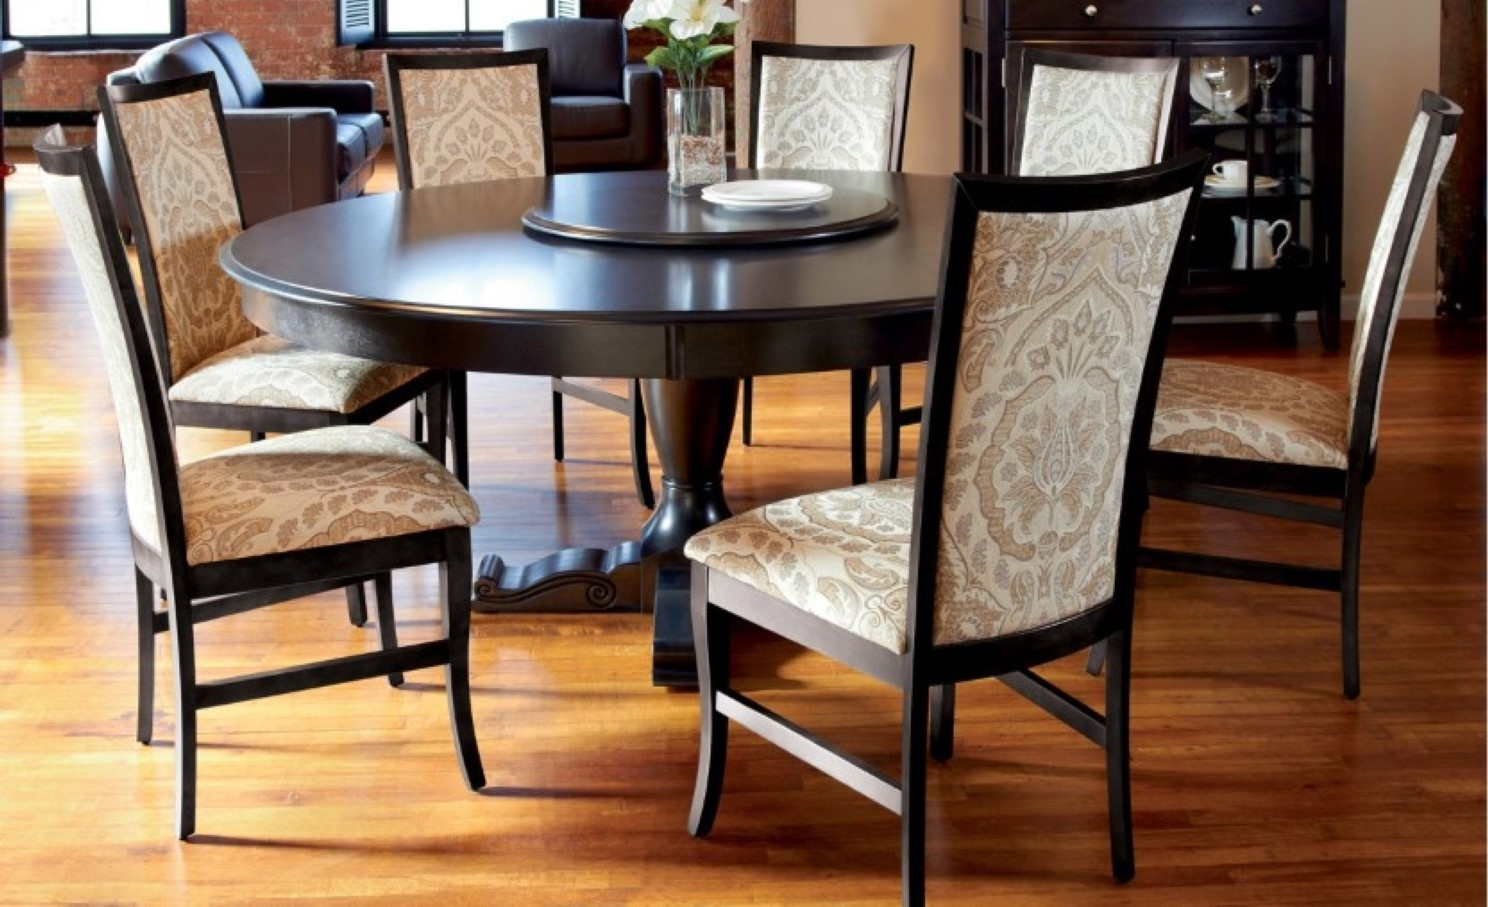 Dining Room Large Solid Wood Dining Room Table Dining Chairs For in 2018 Dark Wood Dining Tables 6 Chairs